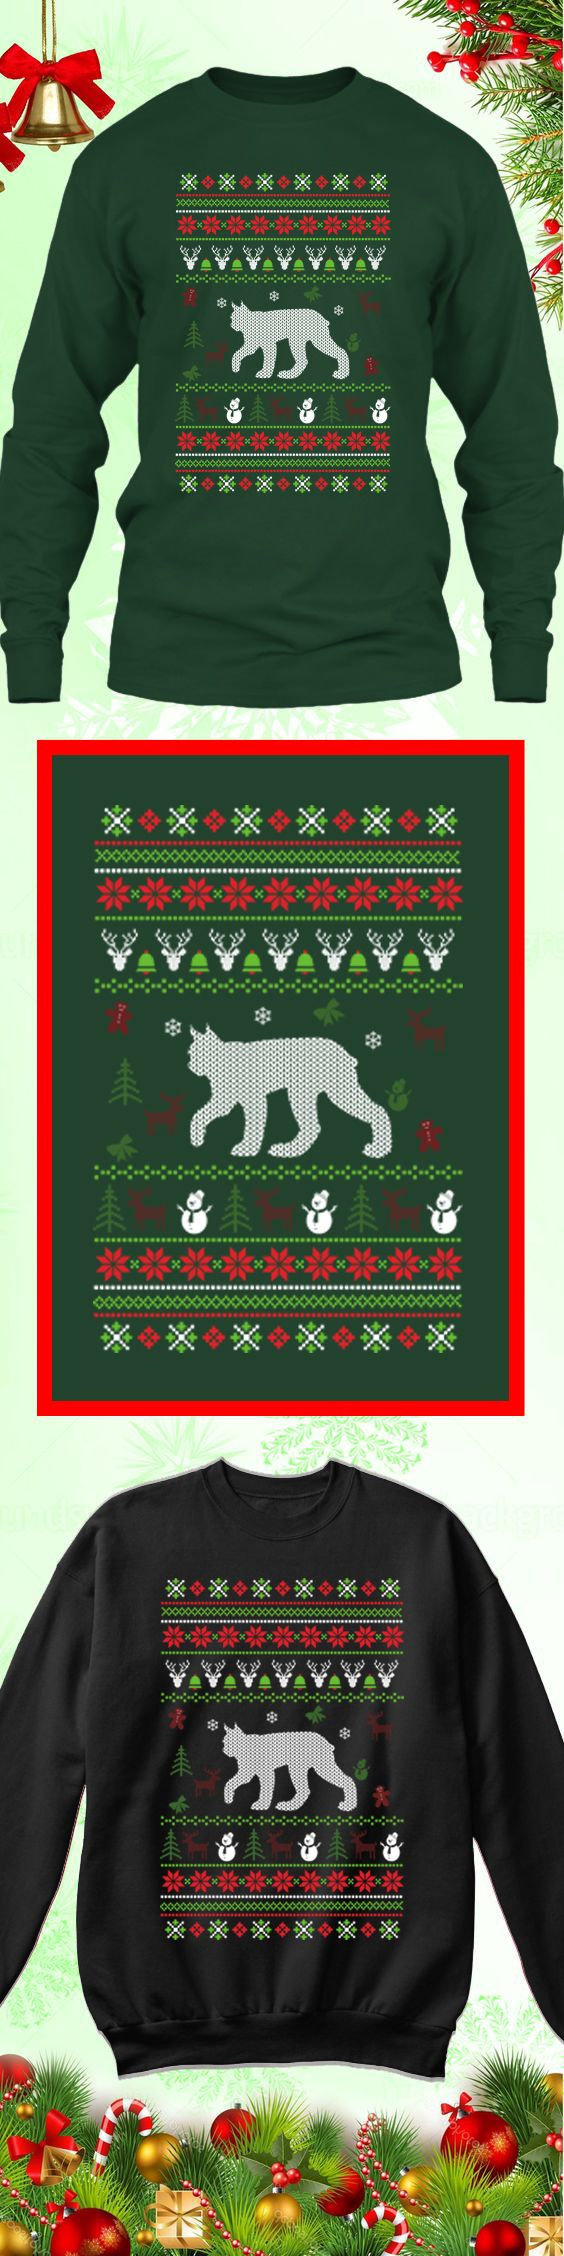 Need a last minute Christmas Gift? Get this limited edition Lynx Ugly Christmas Sweater while supplies last! Buy 2 or more, save on shipping!